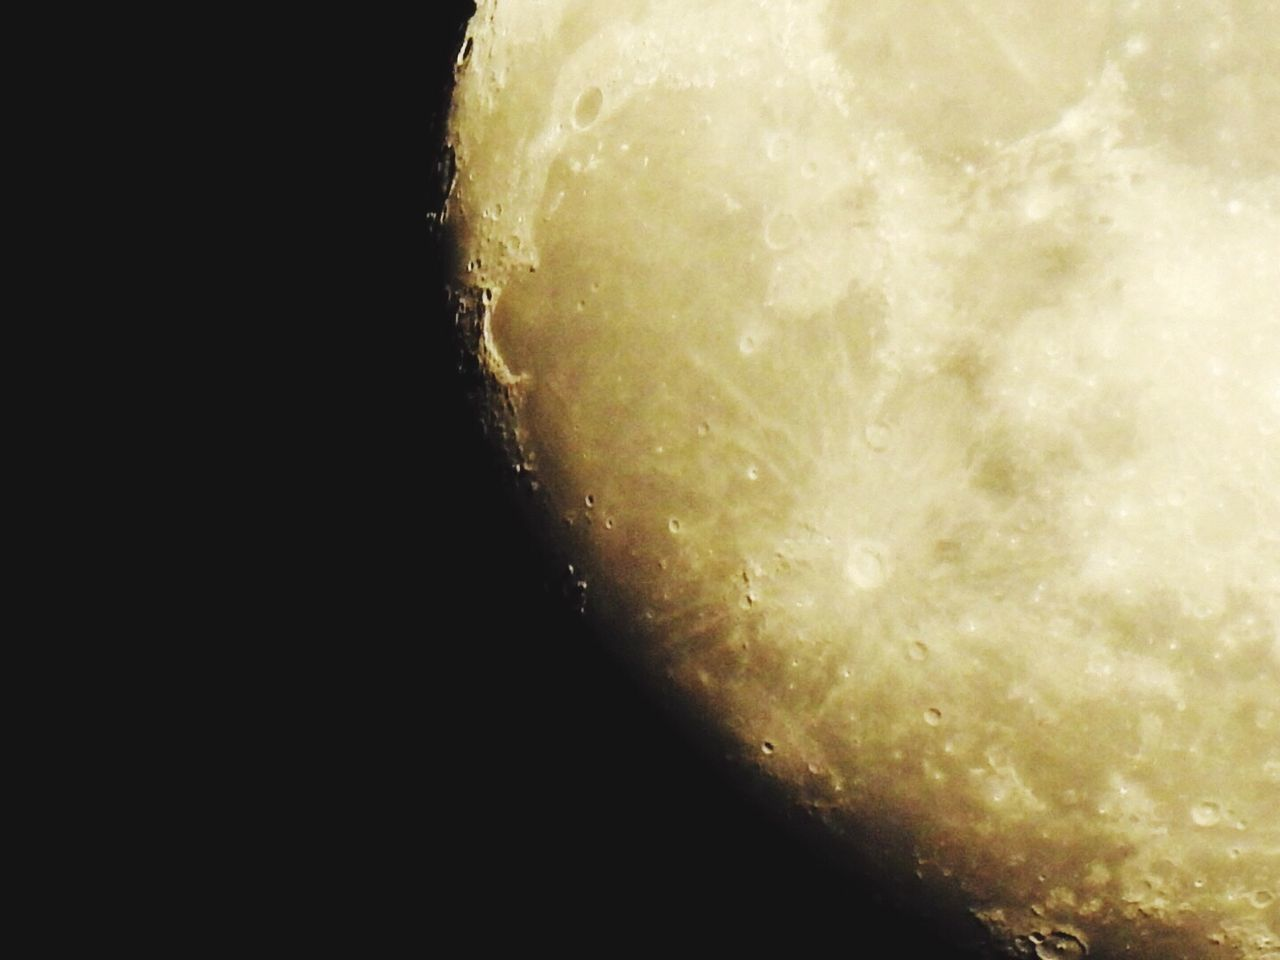 Moon Space No People Close-up Night Astronomy Outdoors Black Background Crater Planetary Moon Space And Astronomy